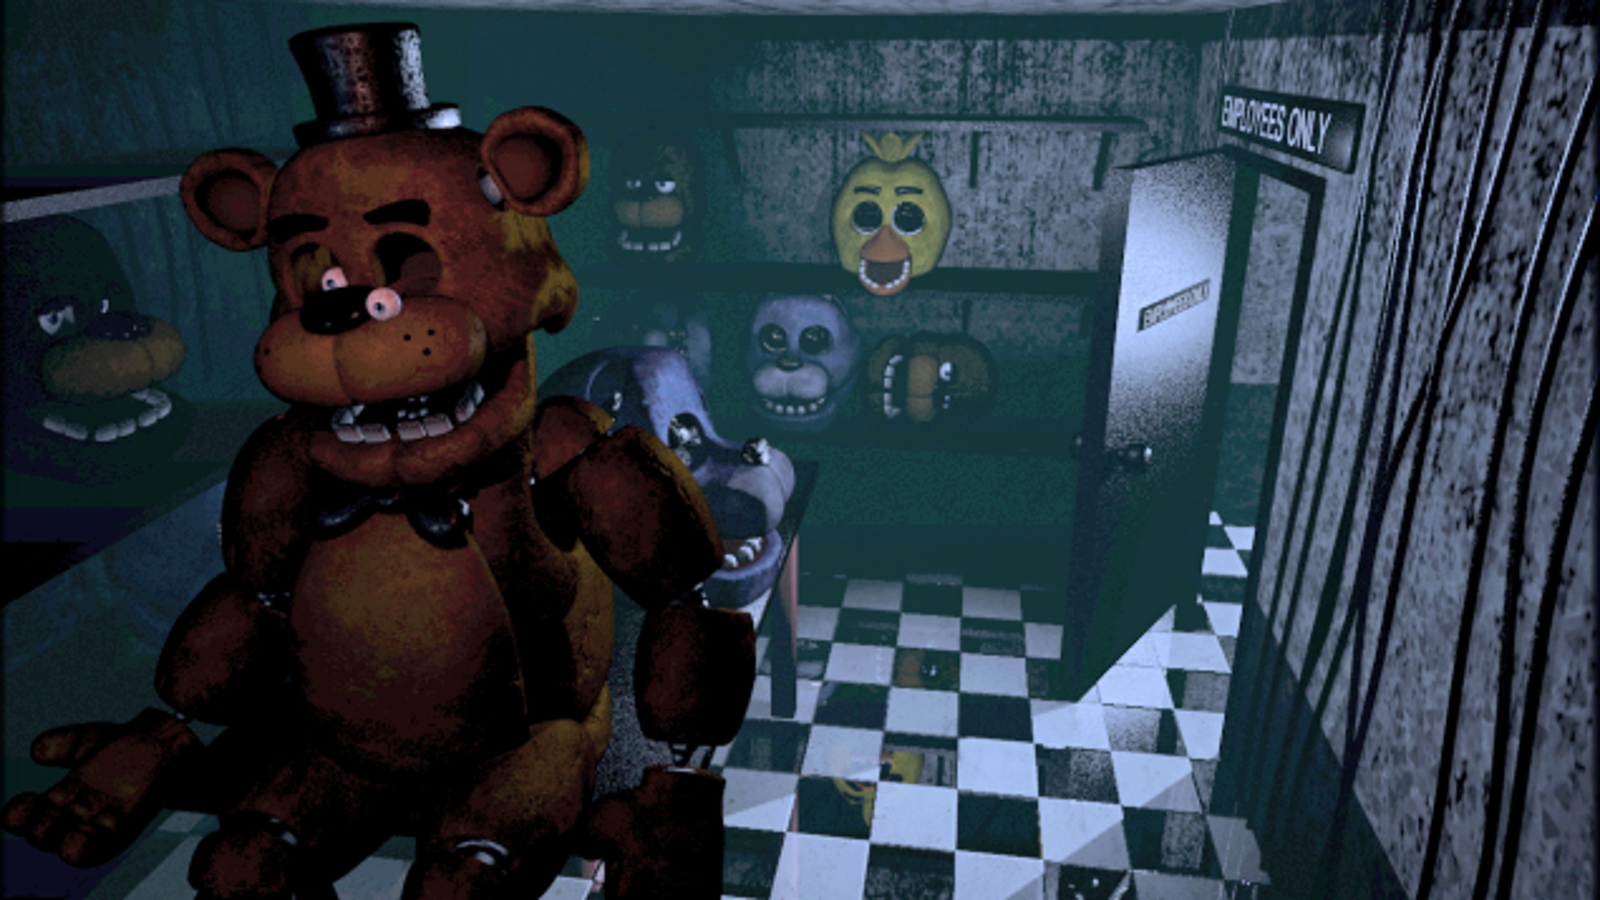 Five Nights at Freddy's Creator Responds To Haters In The Best Way